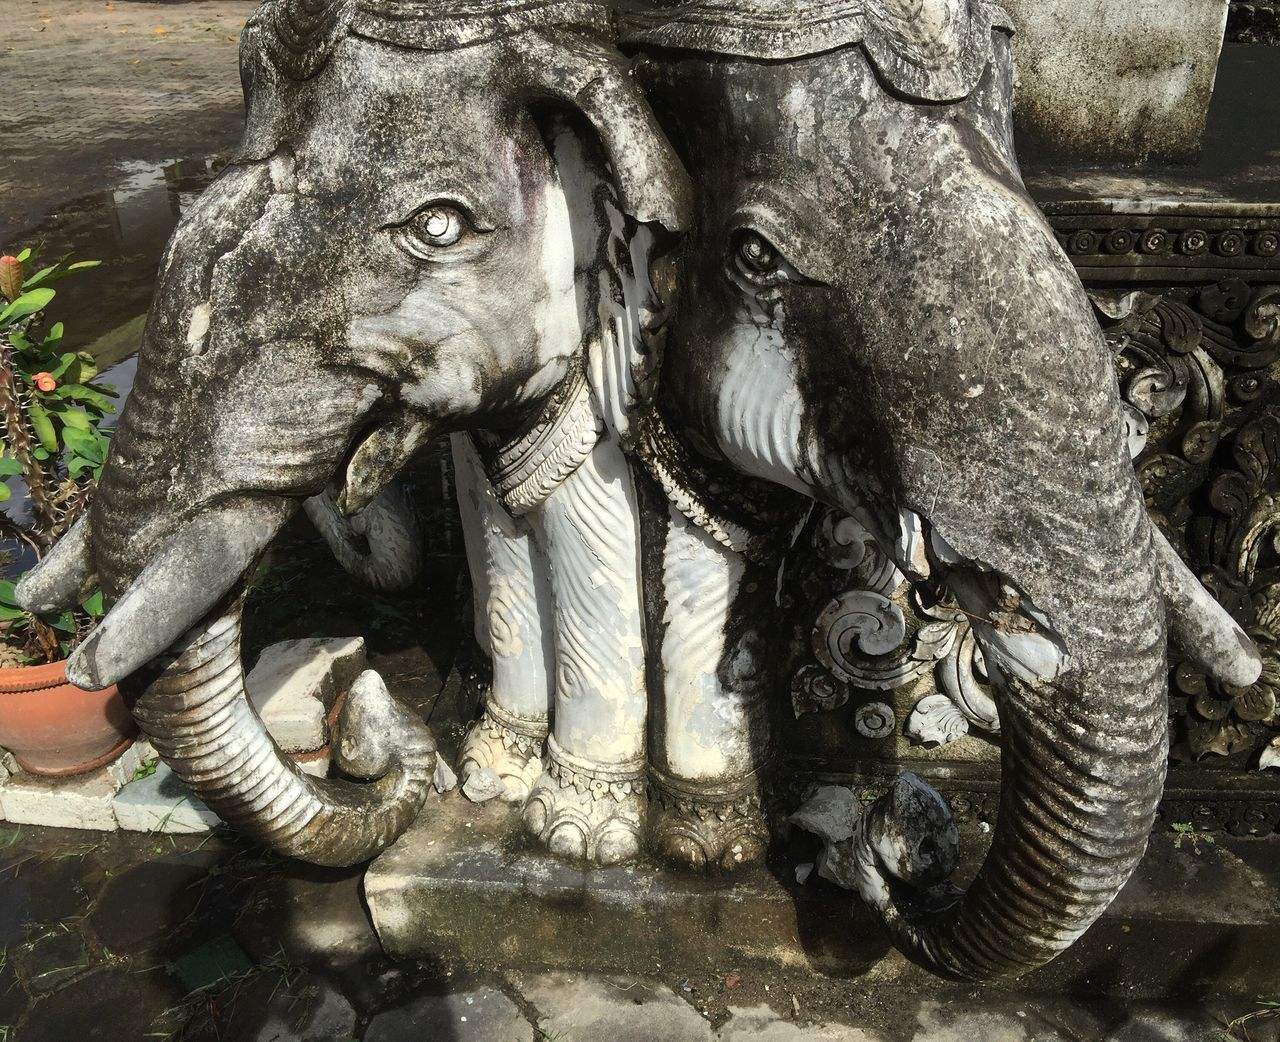 sculpture, statue, art and craft, animal representation, no people, day, outdoors, water, animal themes, close-up